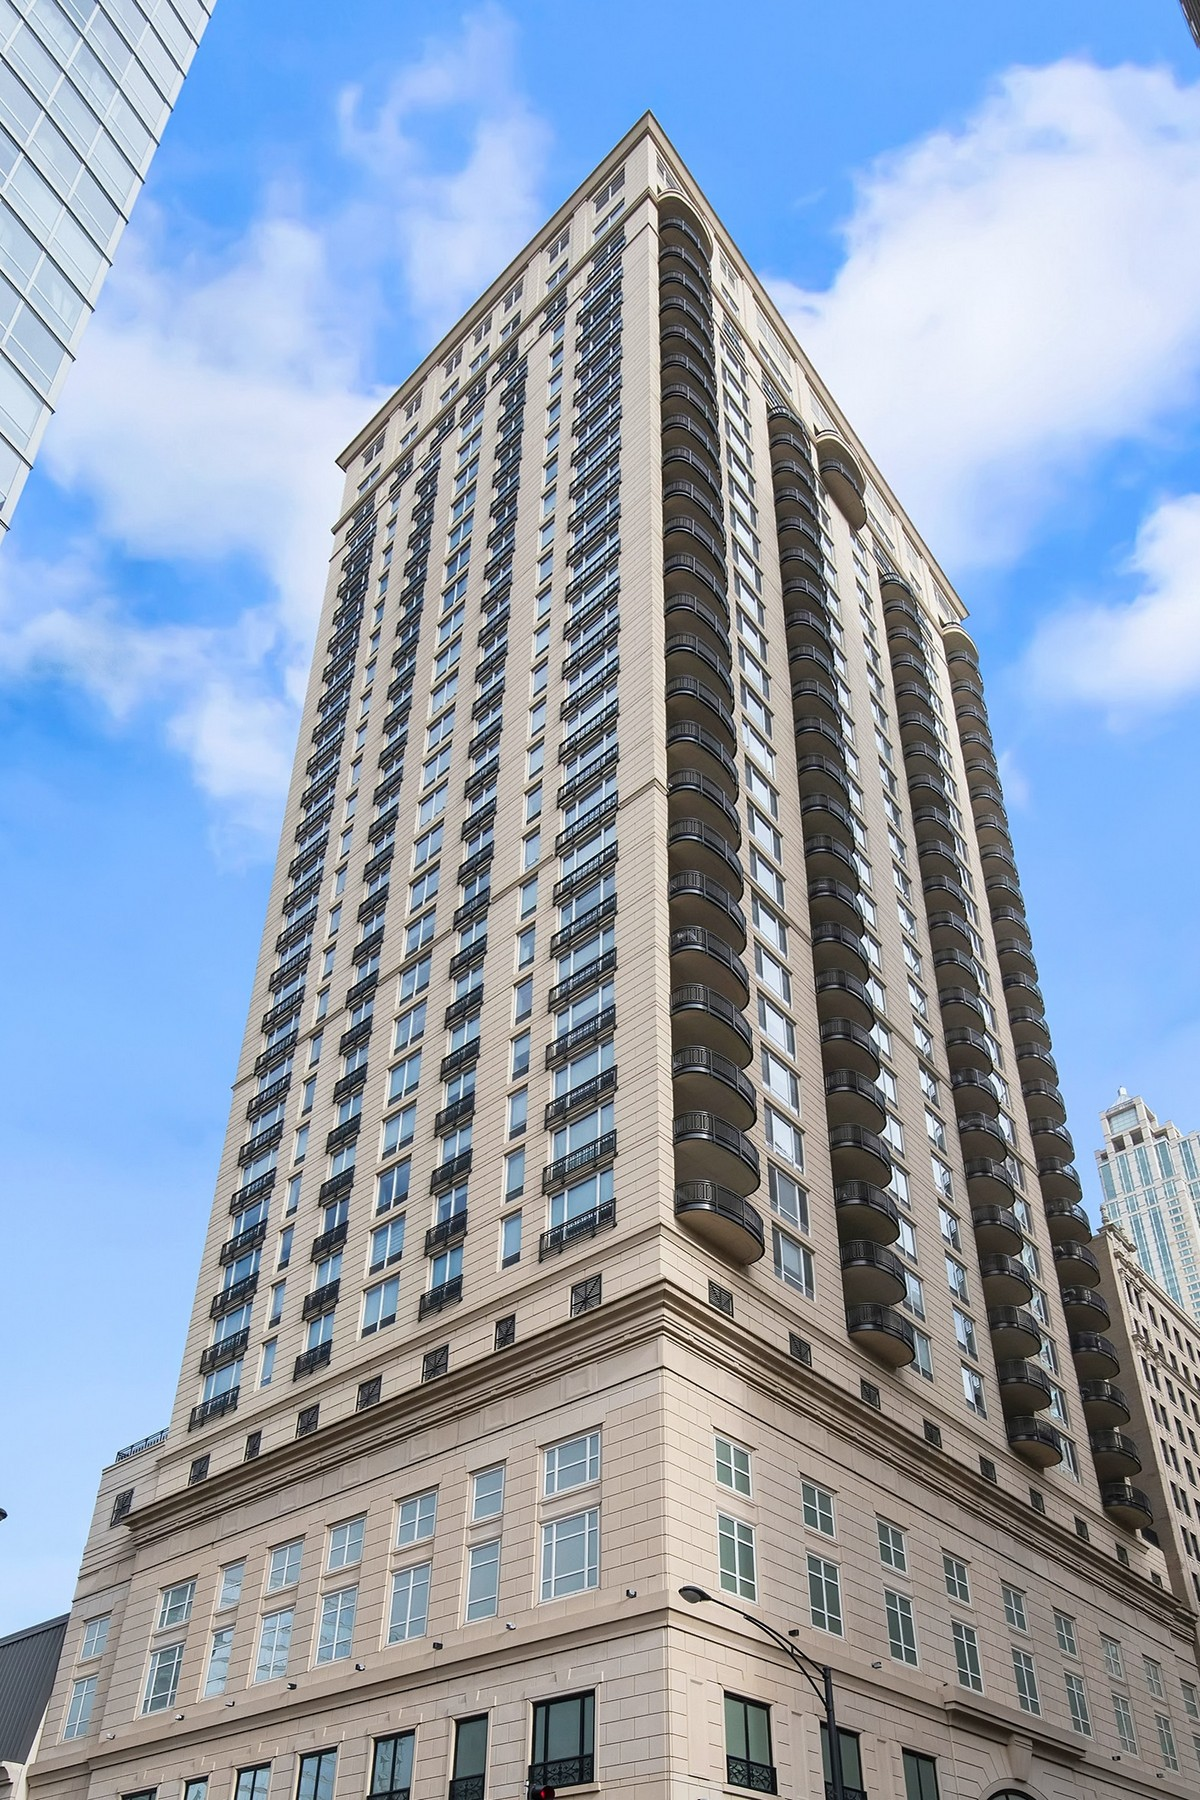 Кондоминиум для того Продажа на Impeccable High-Floor Unit 10 E Delaware Place Unit 28E, Chicago, Иллинойс, 60611 Соединенные Штаты